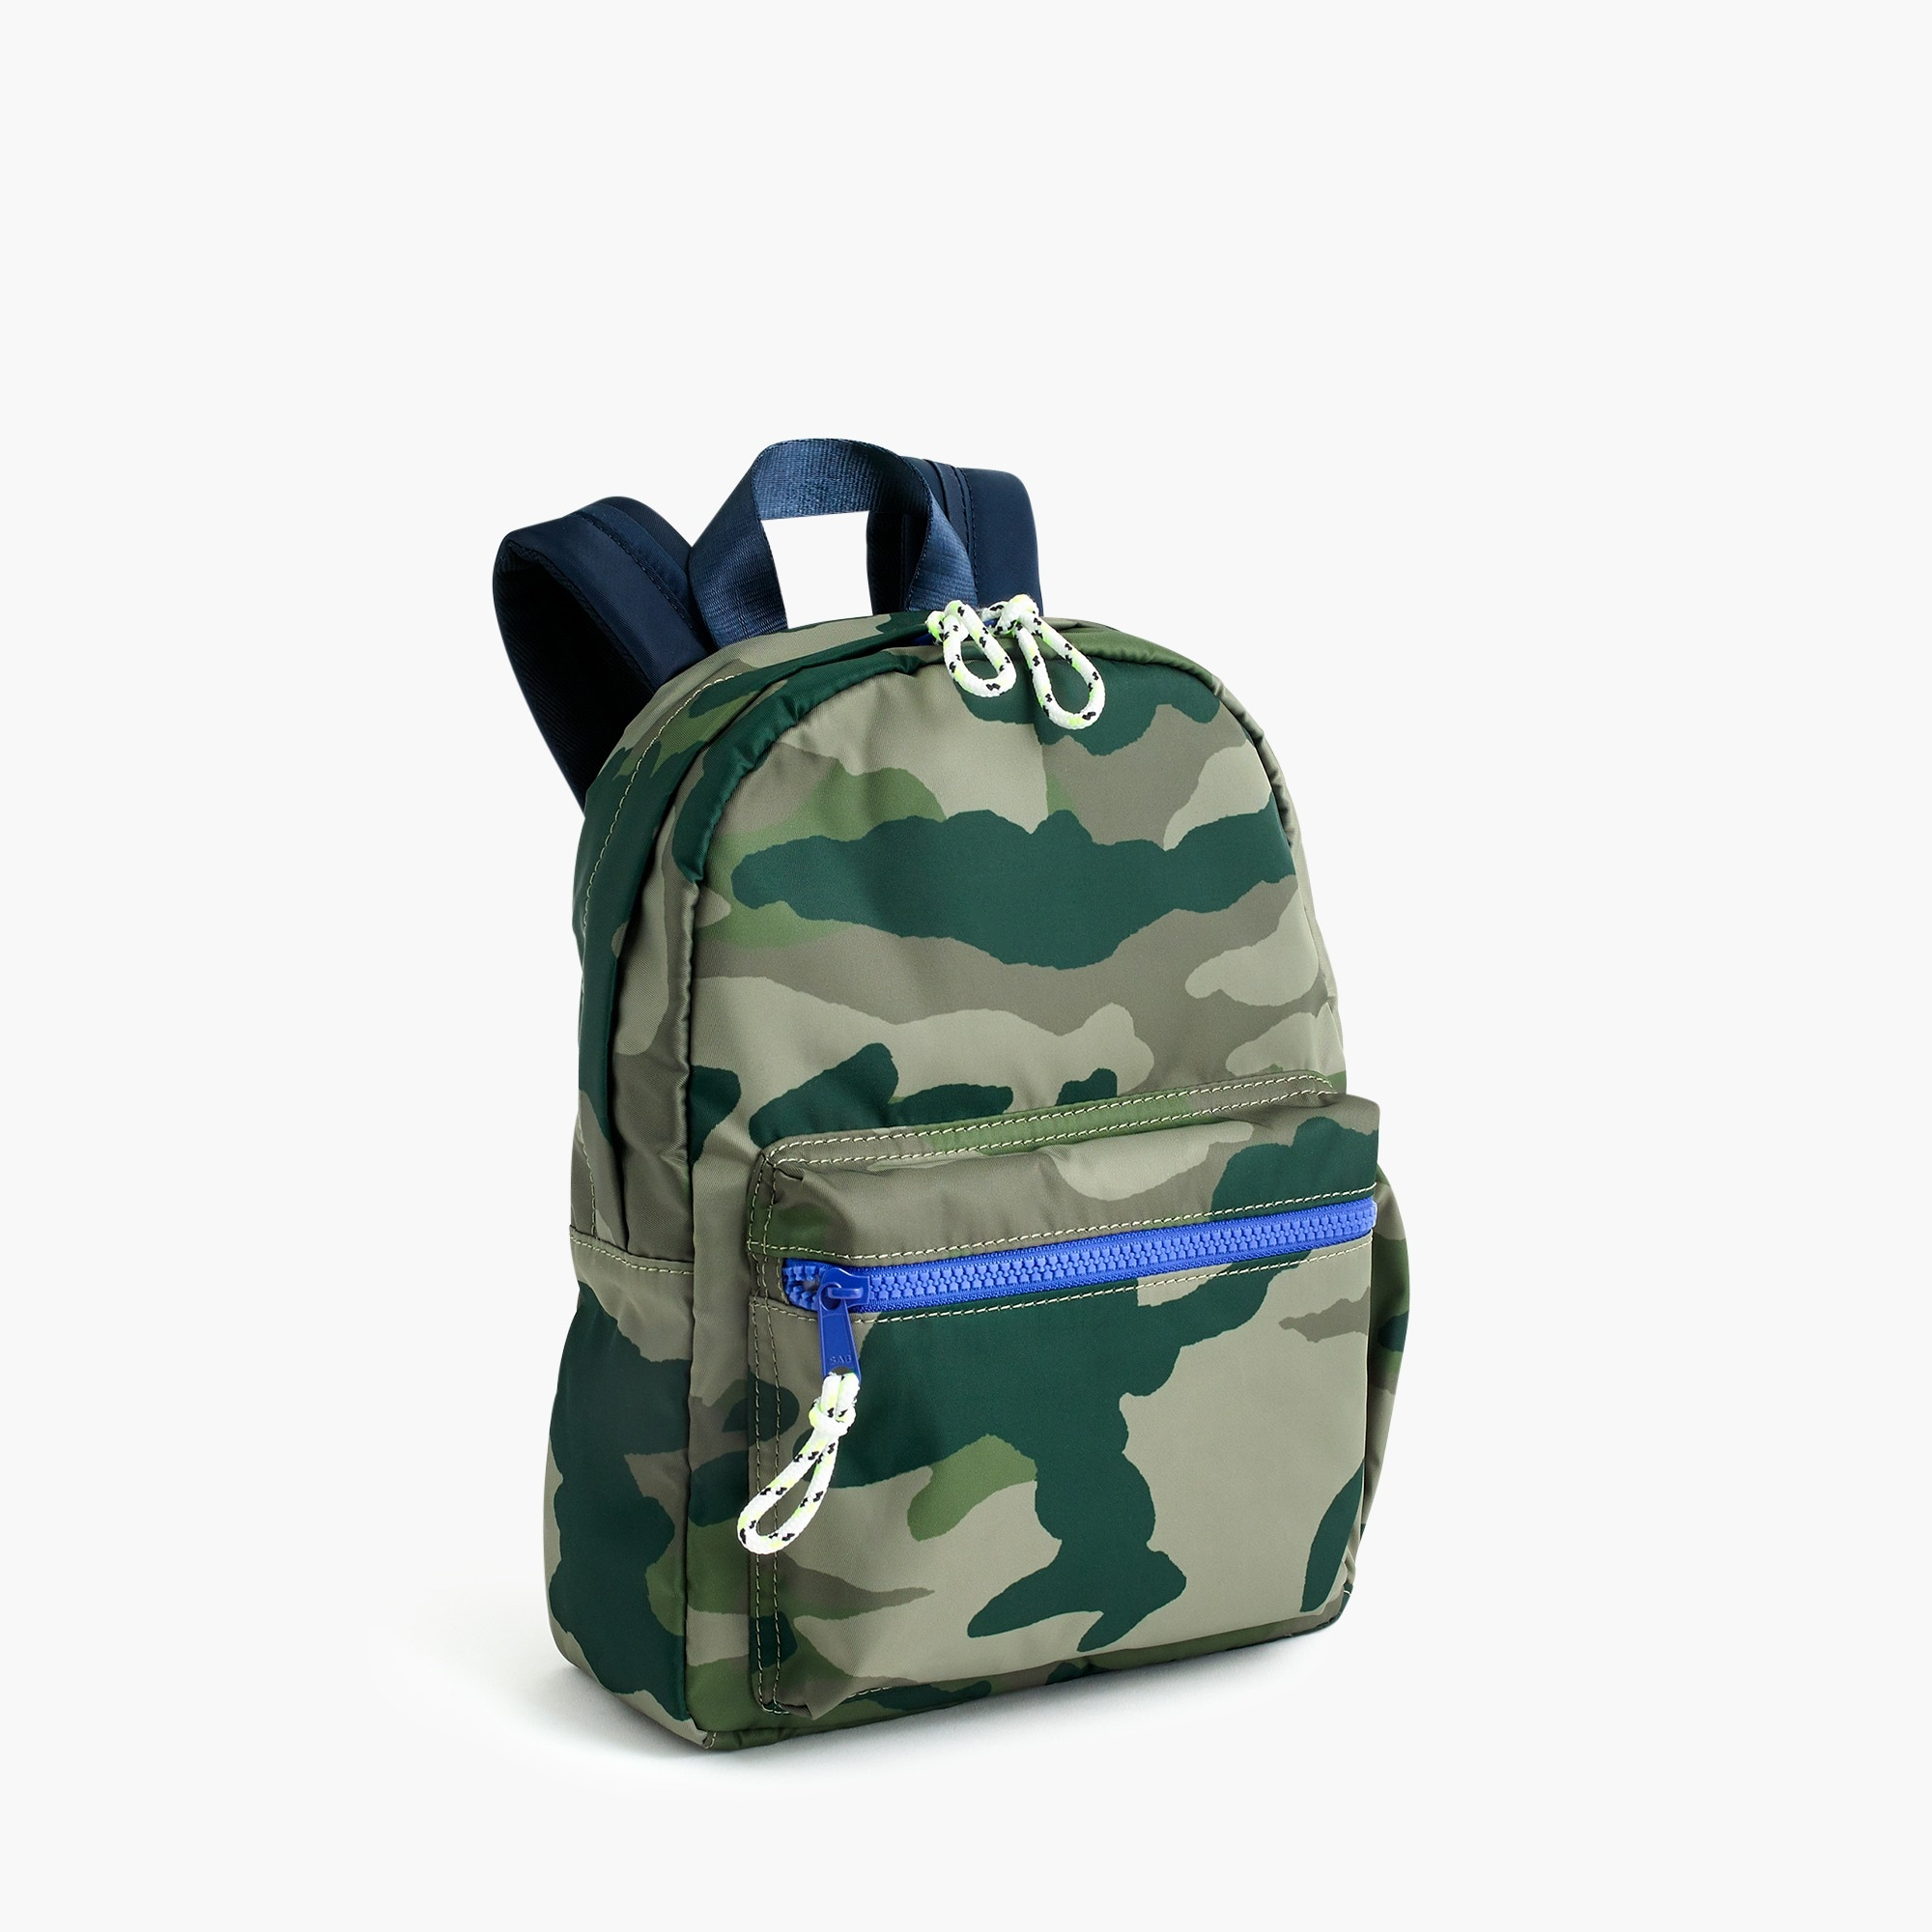 Kids' camo-print mini backpack boy new arrivals c